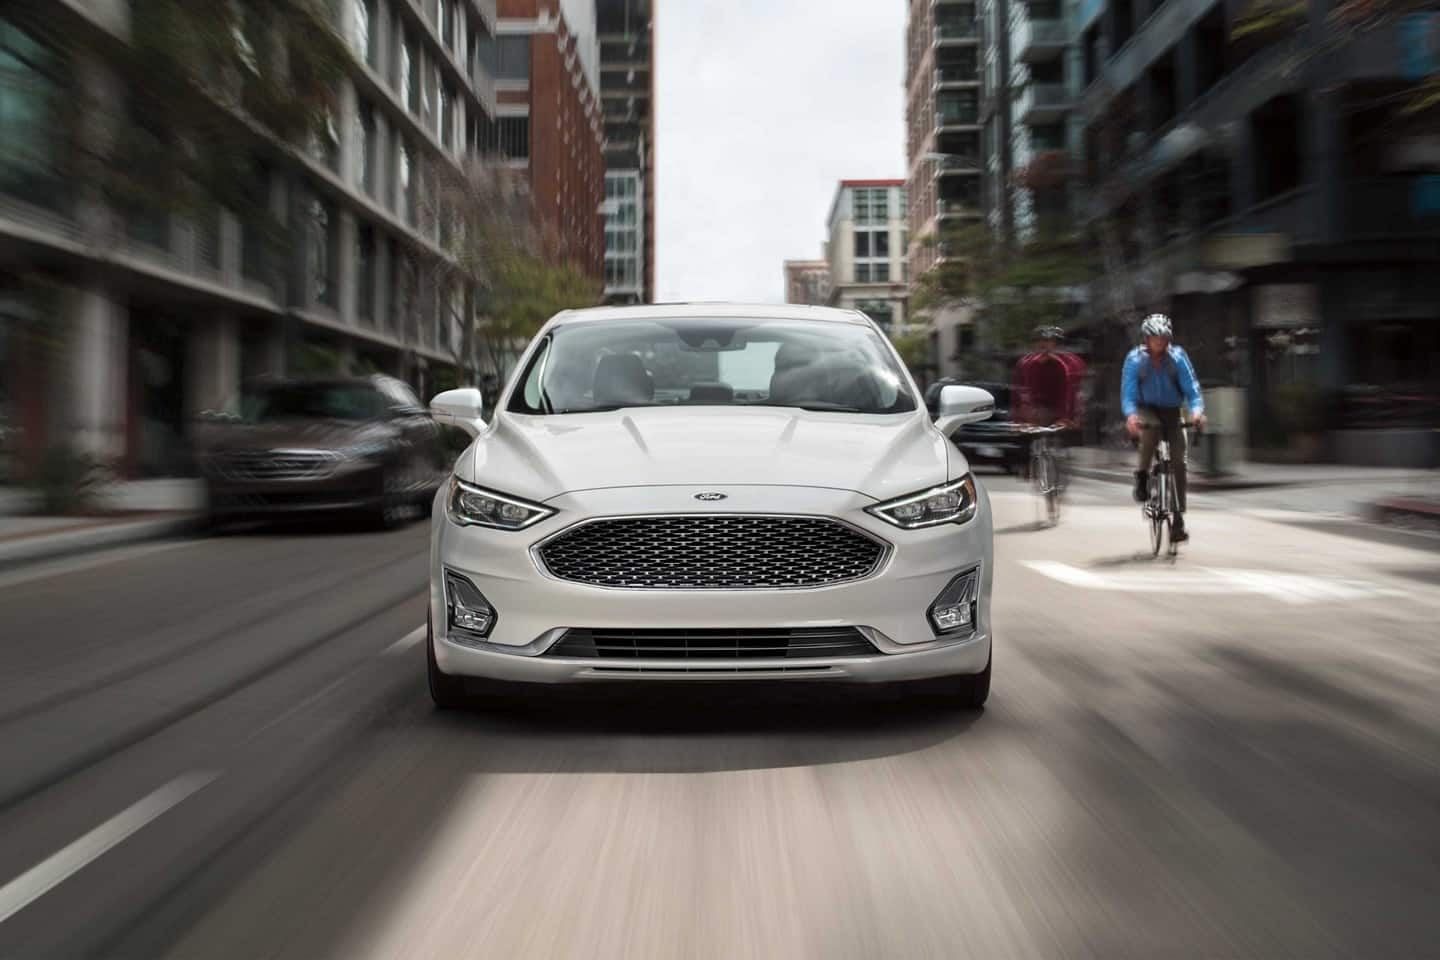 2019 Ford Fusion Leasing near Mesquite, TX